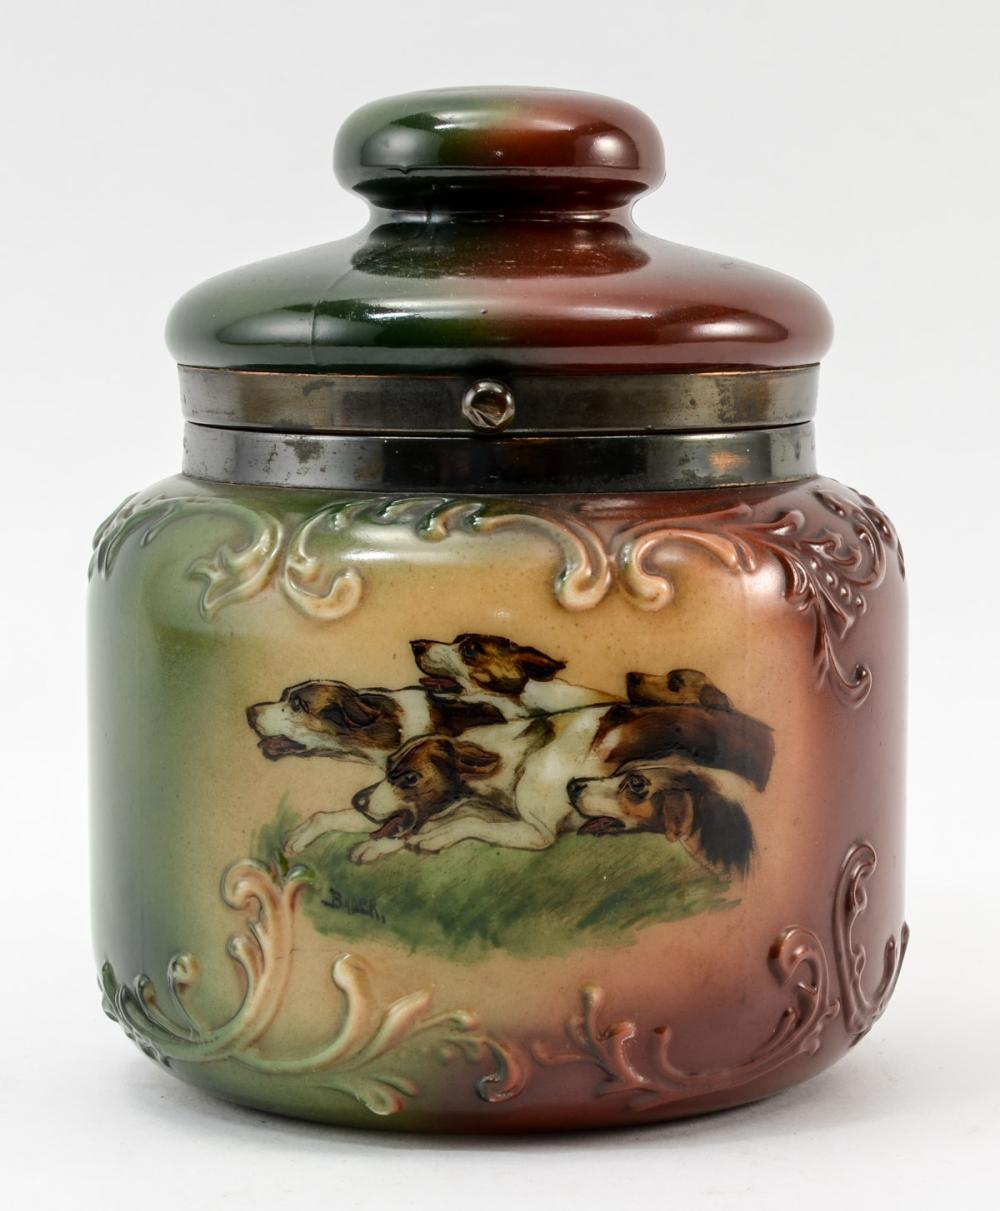 Handel Ware Fancy Glass Tobacco Humidor w/ dogs